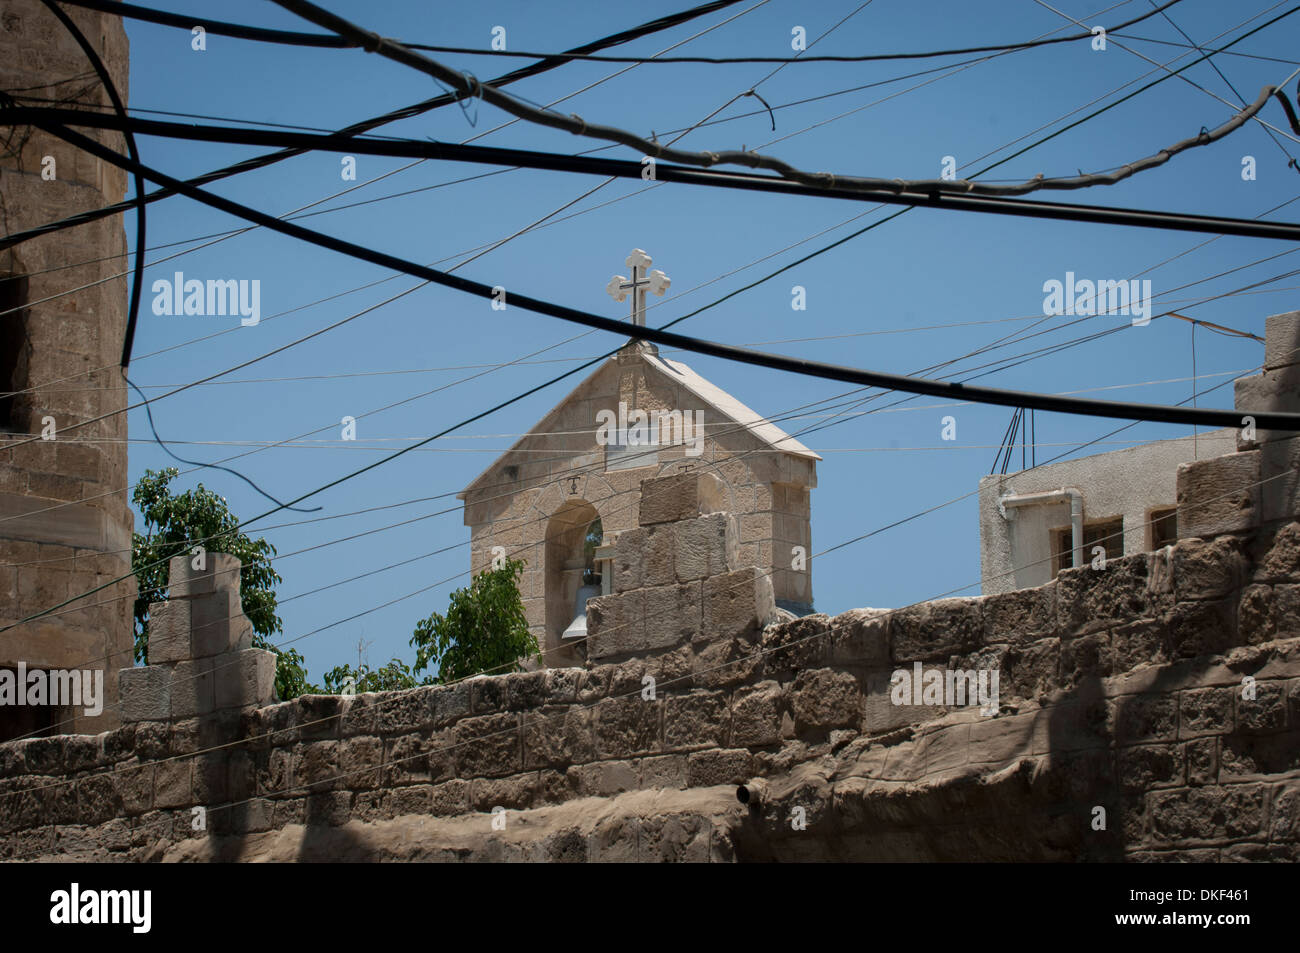 Saint Porphyrius Church, El Zaiton, Gaza City, Gaza, Palestinian Territories. - Stock Image